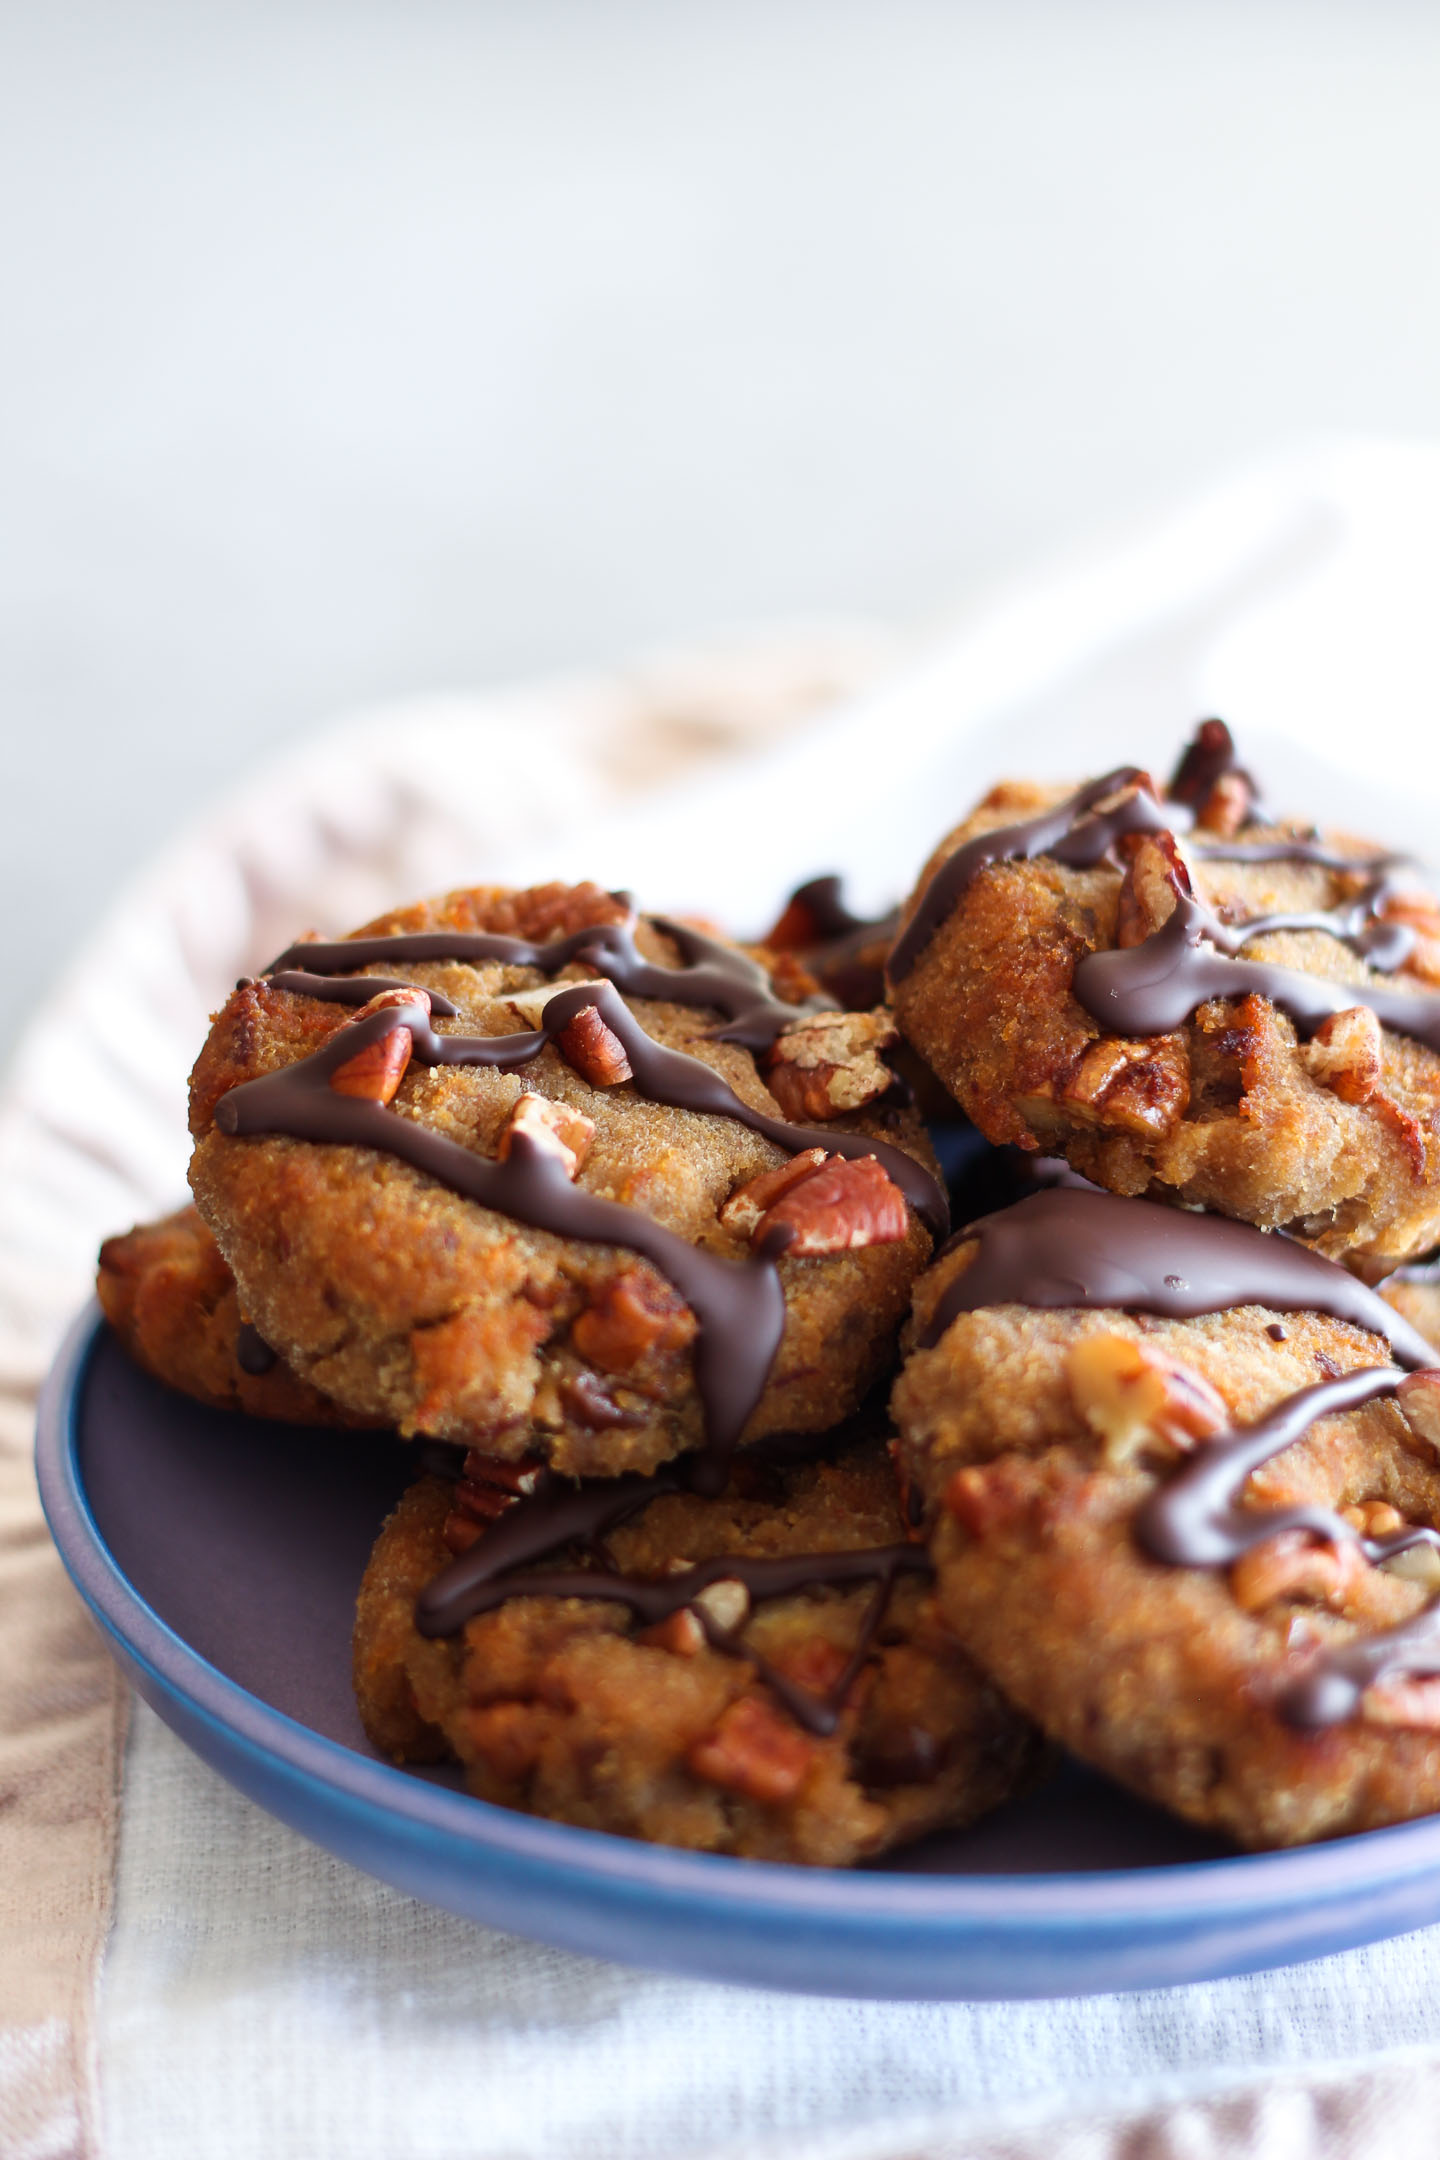 Banana, Date and Pecan Collagen Cookies drizzled with chocolate and piled high on a plate